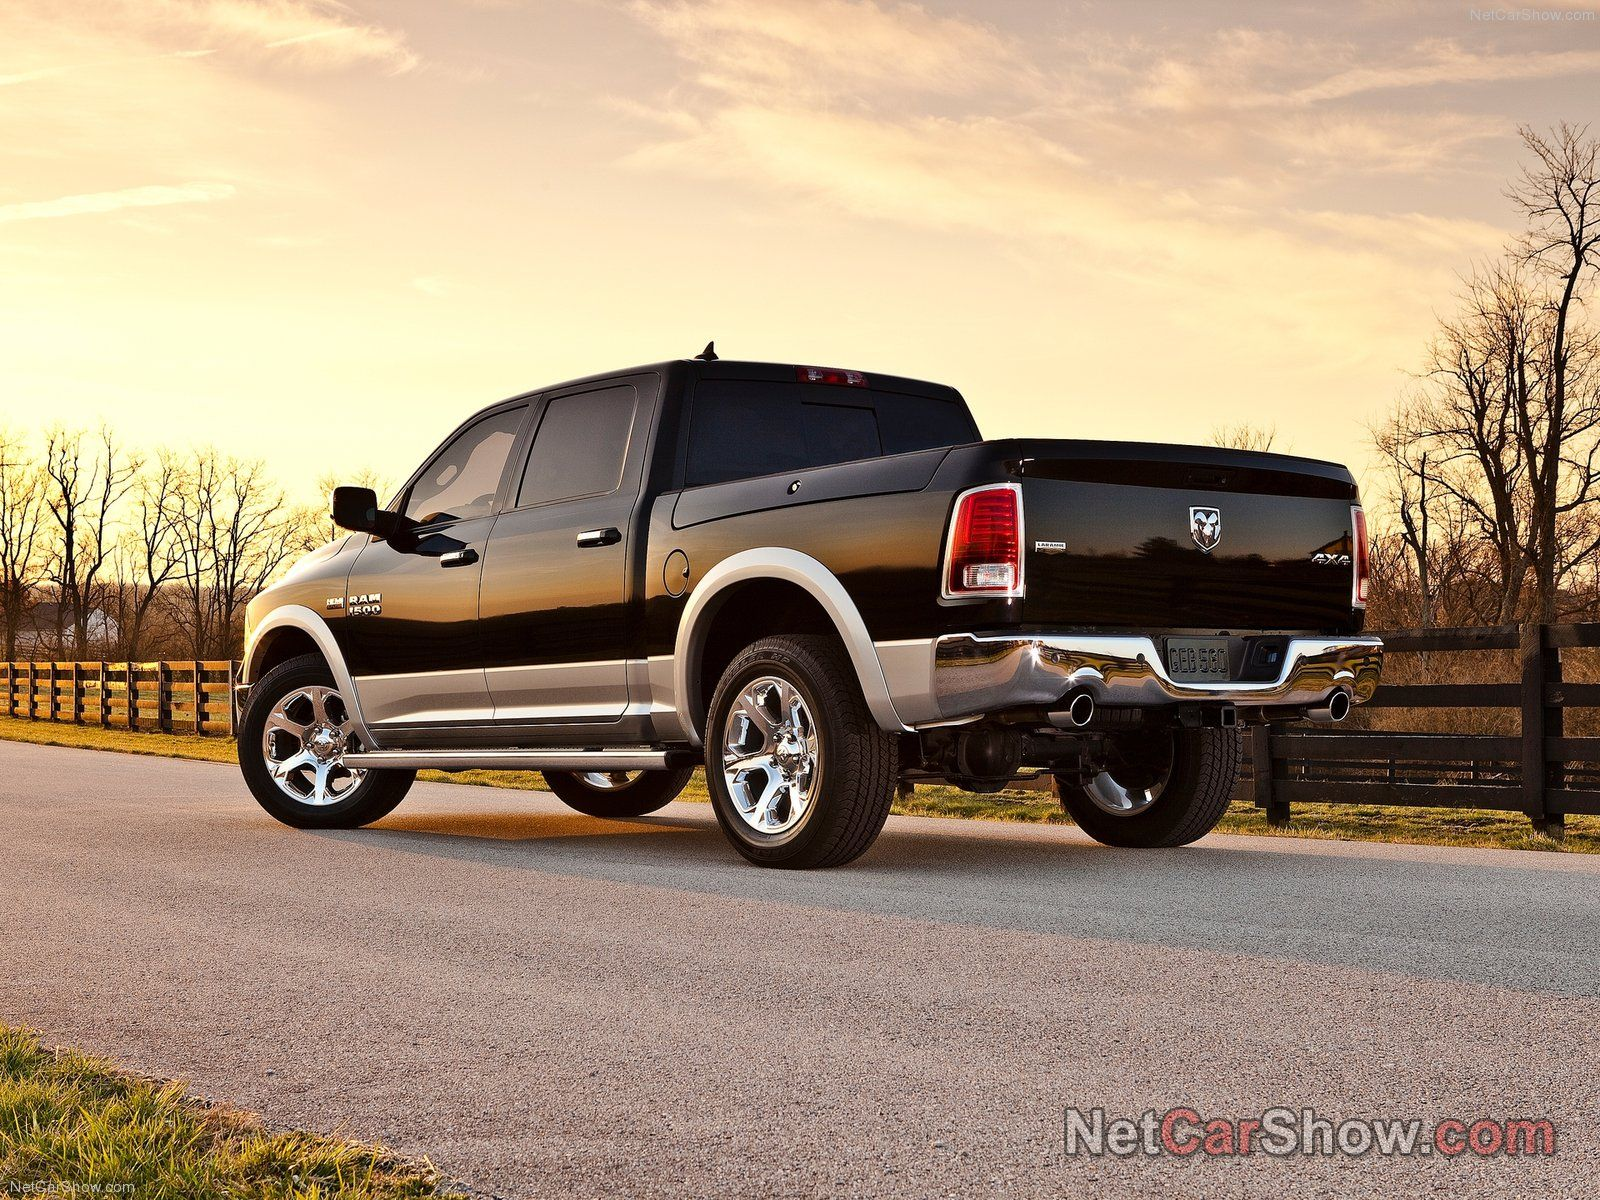 New dodge ram 1500 wallpaper dodge 1500 dodge new